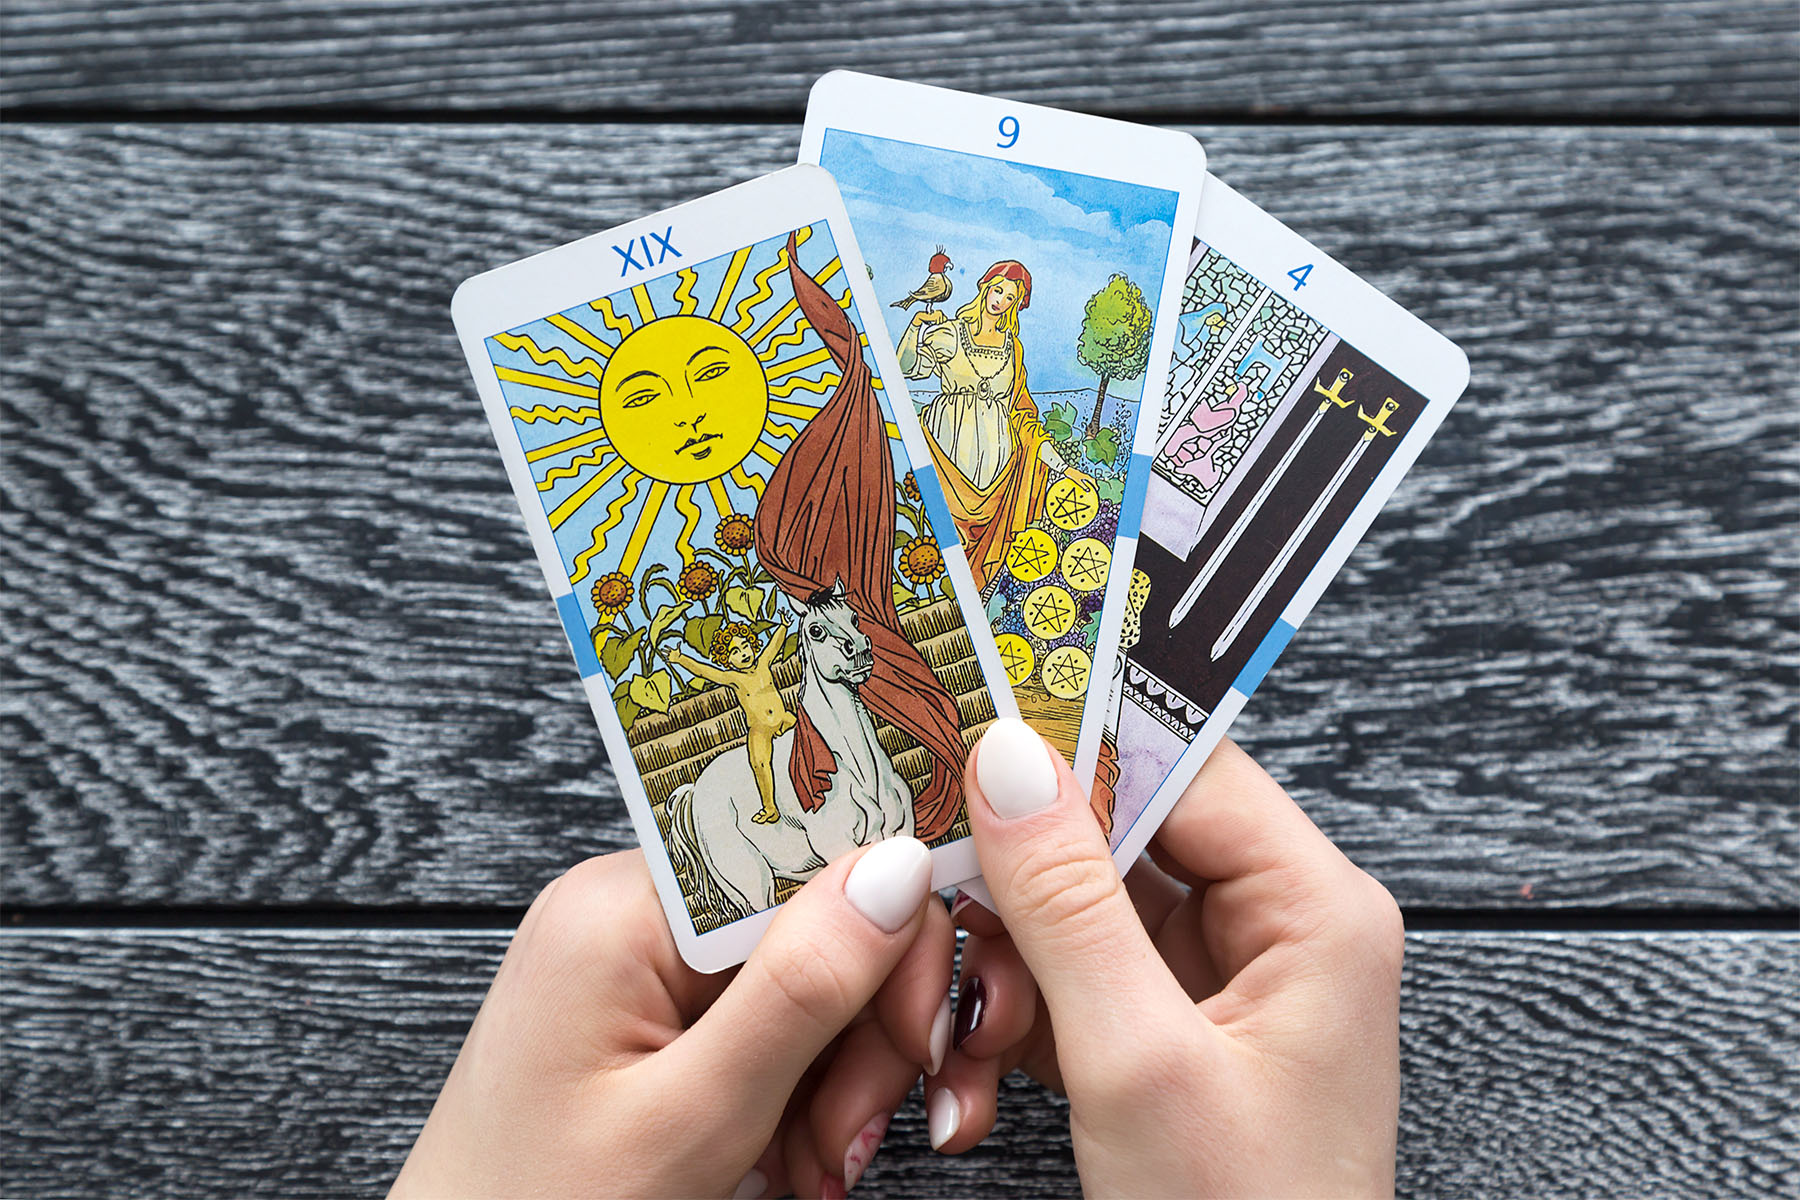 How to Pick a Tarot Deck: Where to Buy and More